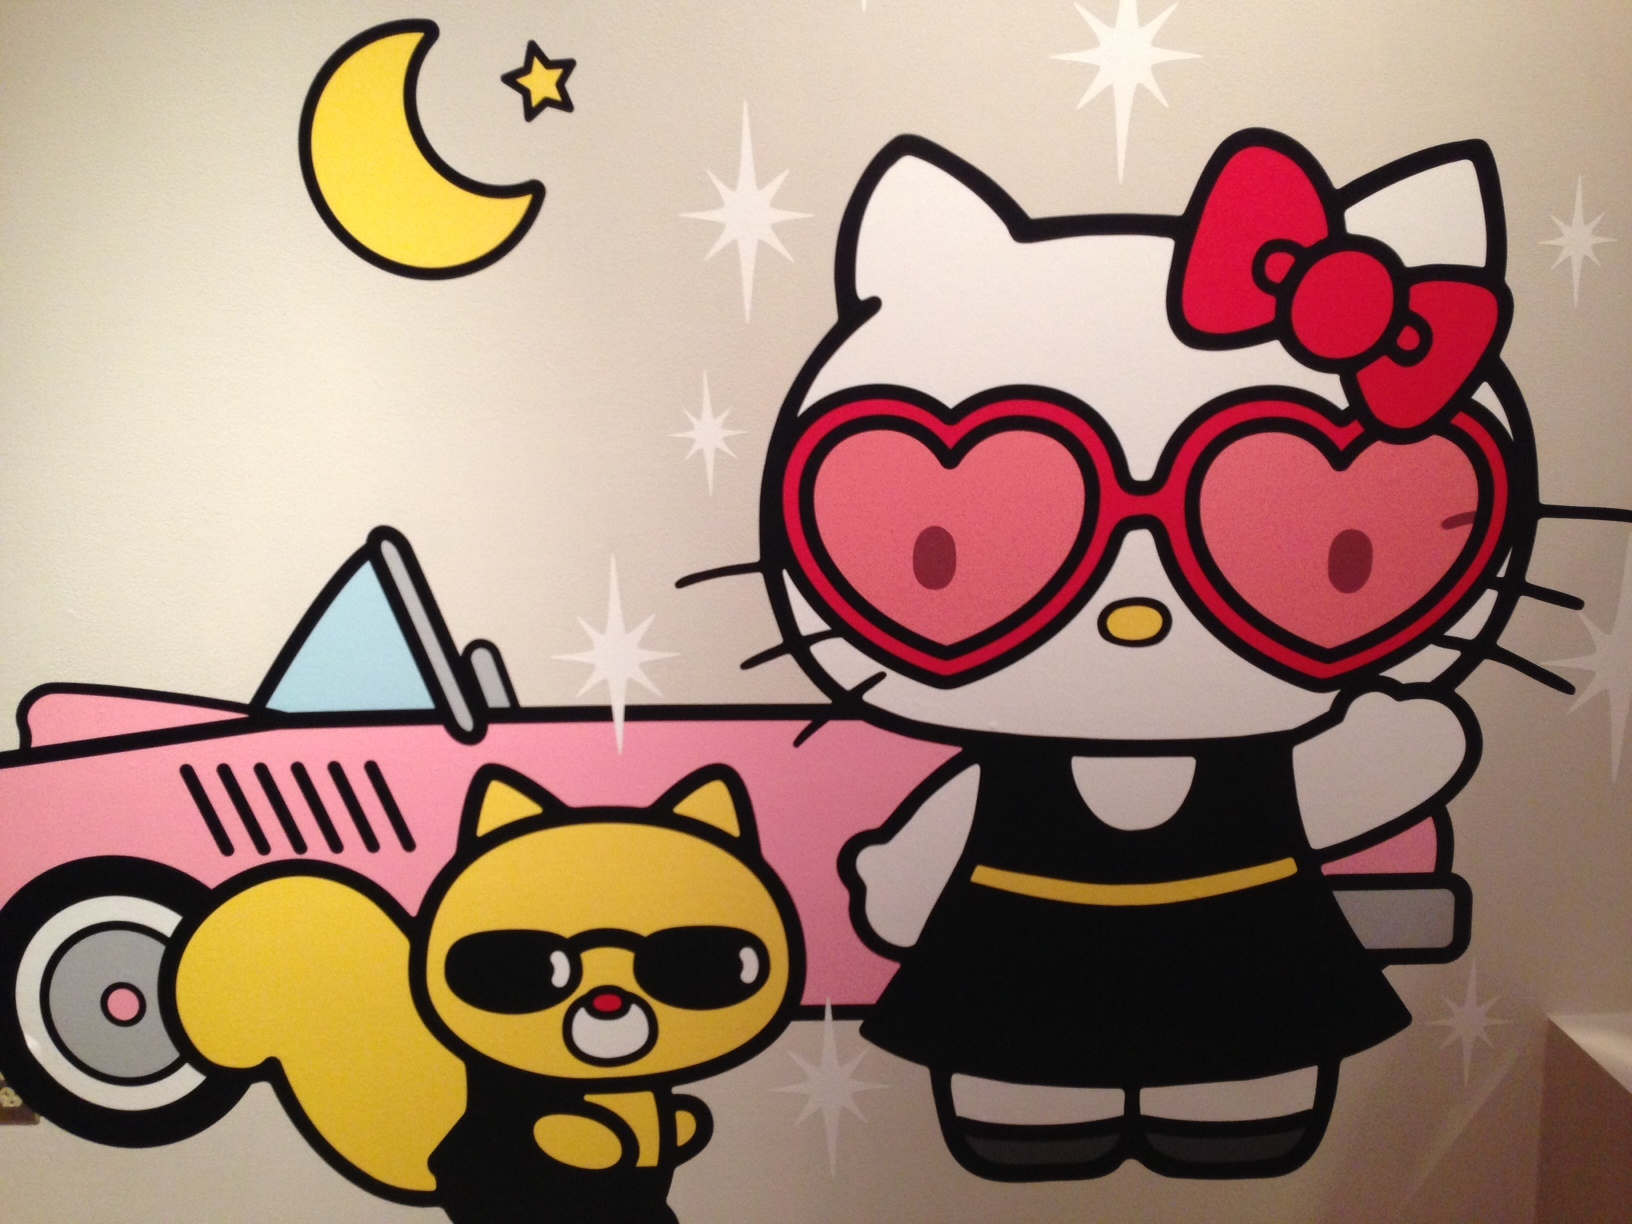 Hello Kitty: Why No Mouth?